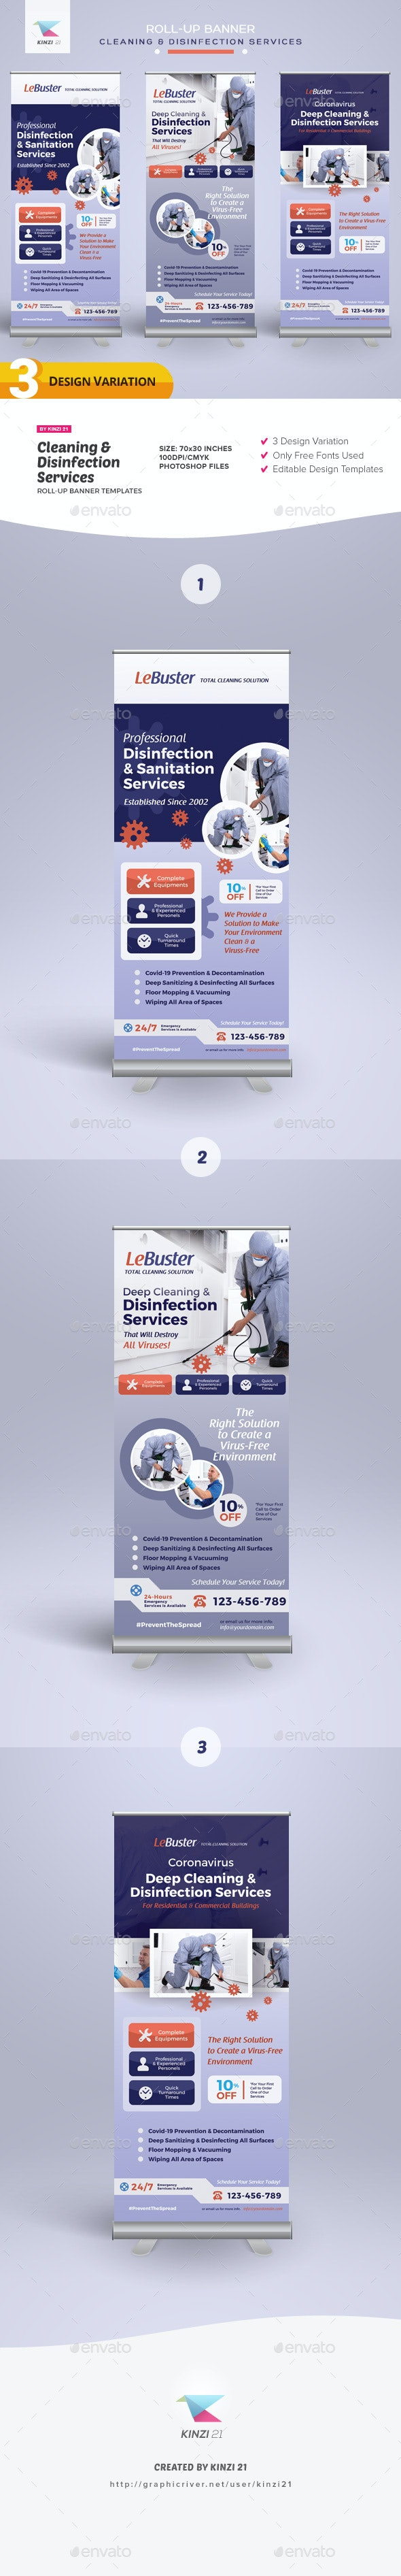 Cleaning & Disinfection Services Roll-up Banner Templates - Signage Print Templates